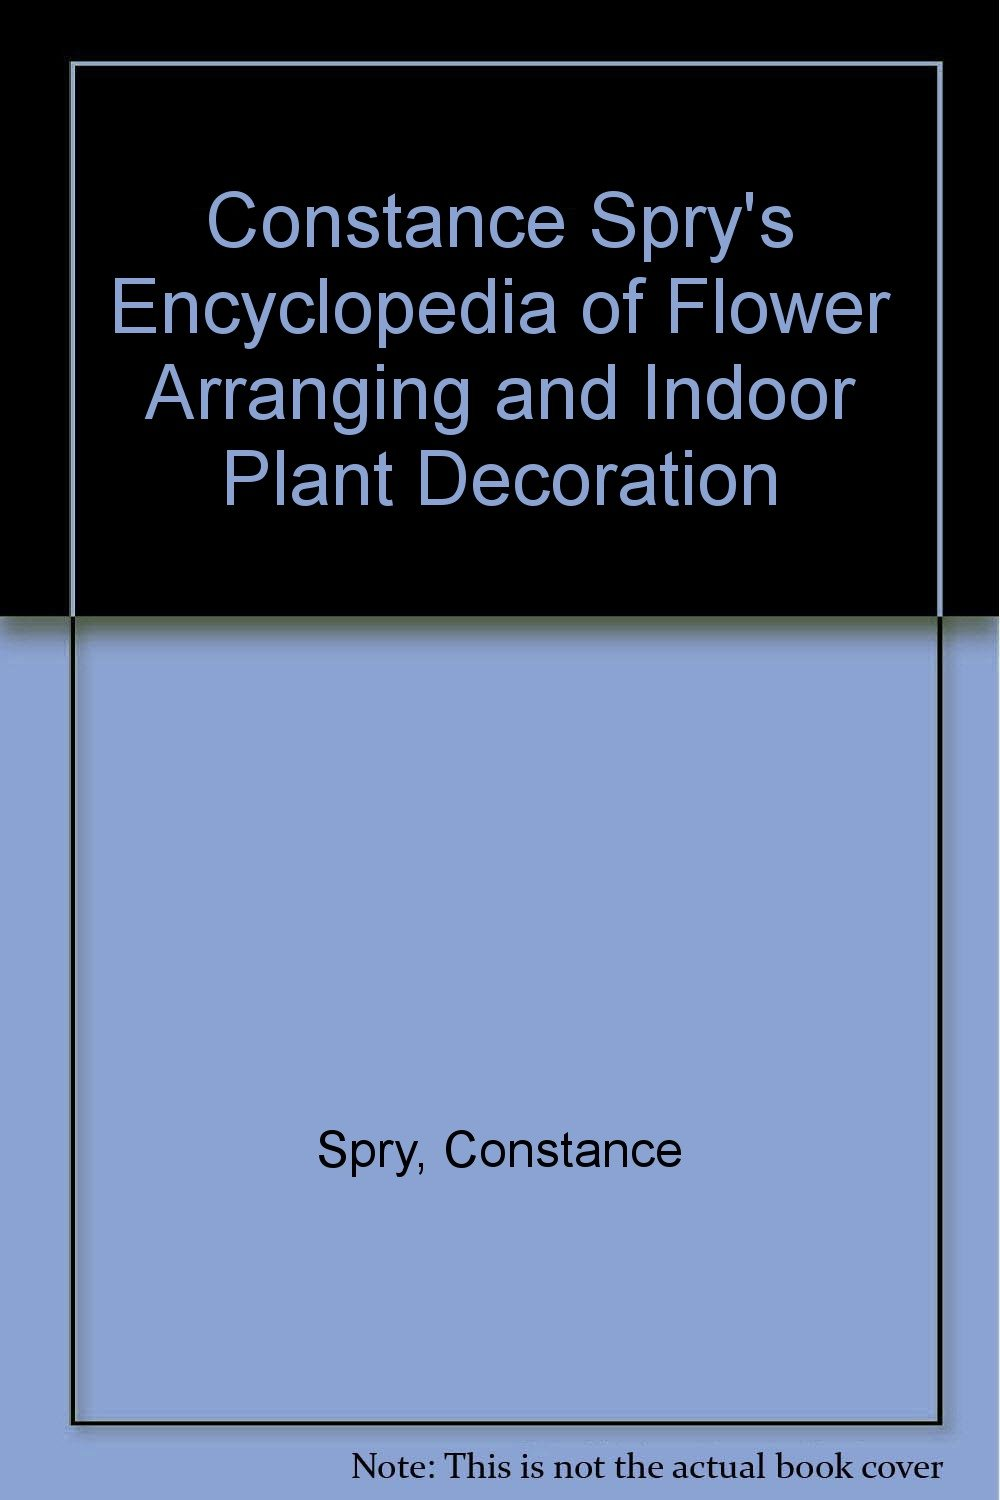 Constance Spry's Encyclopedia of Flower Arranging and Indoor Plant Decoration